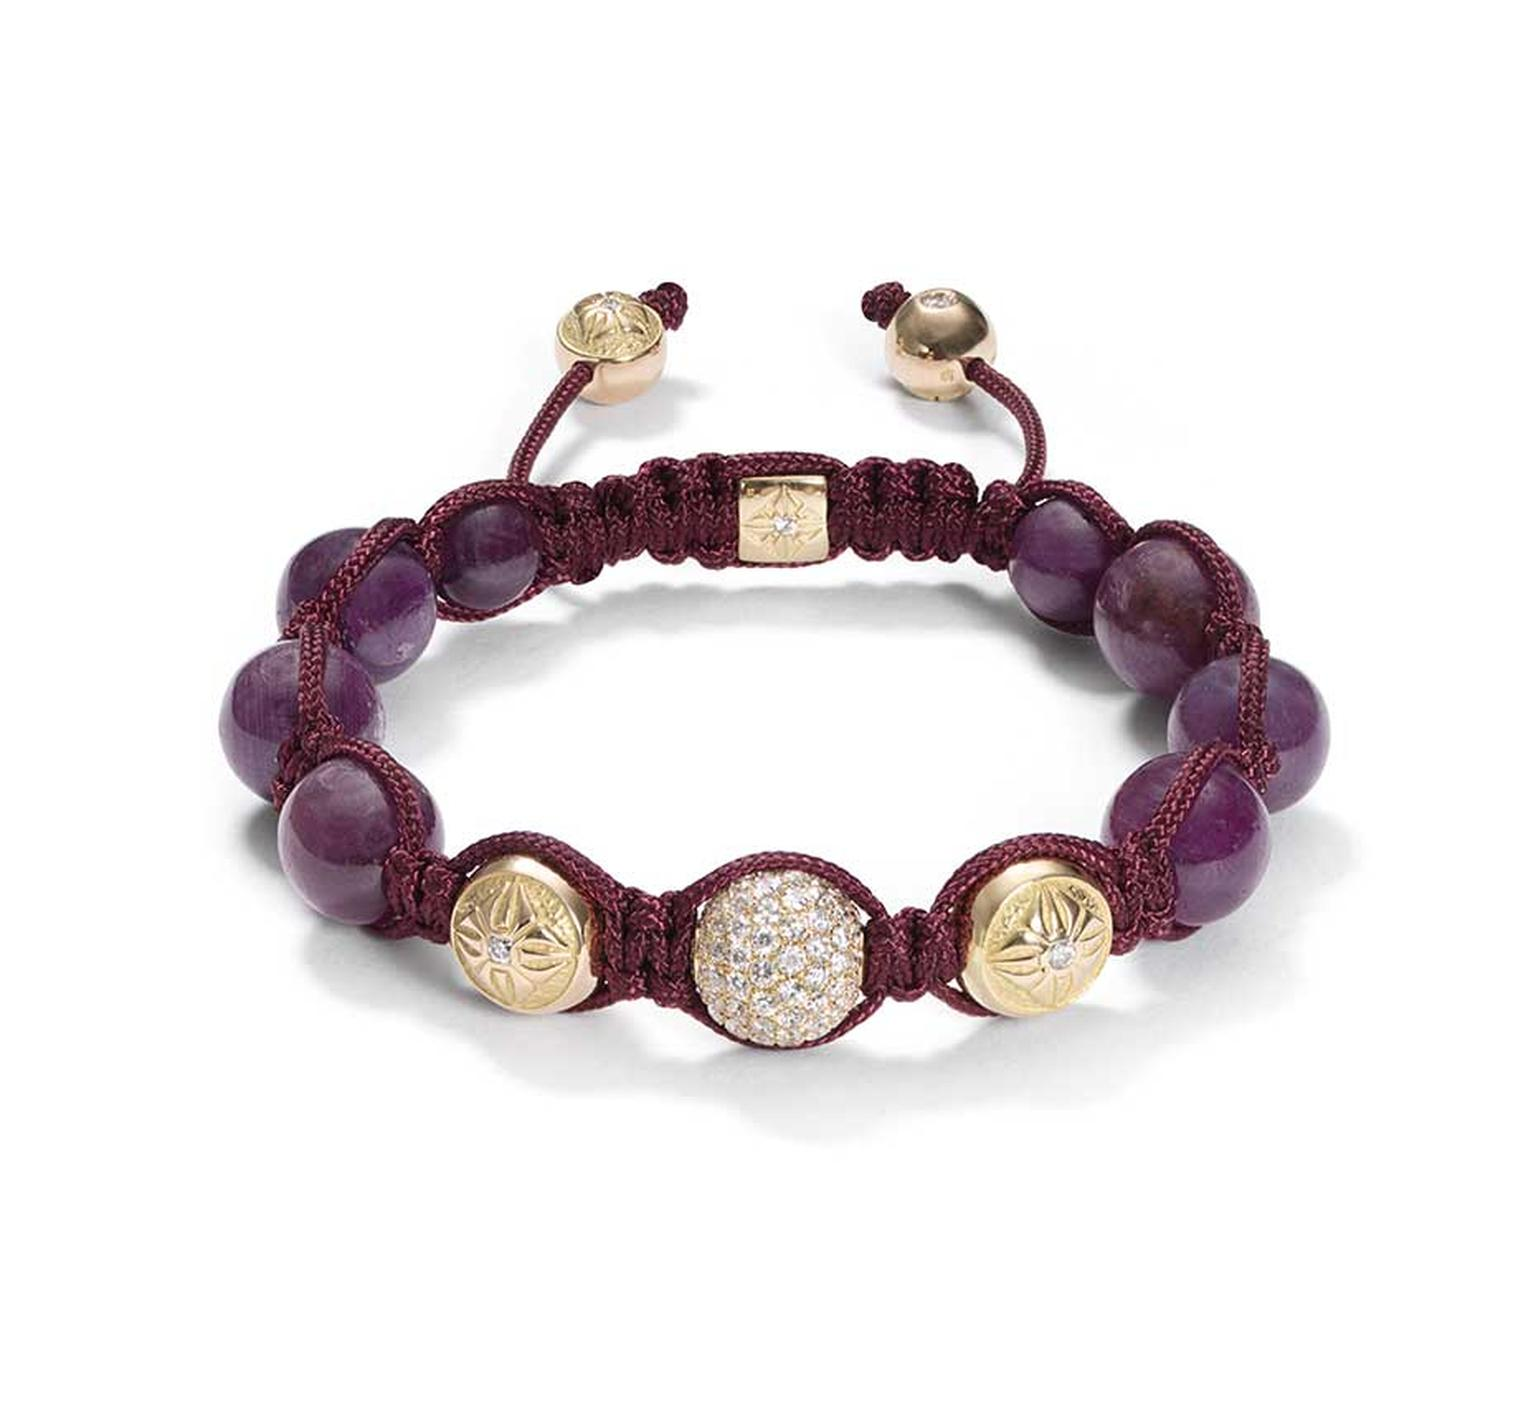 Spiritual jewellery: good karma to see in 2015